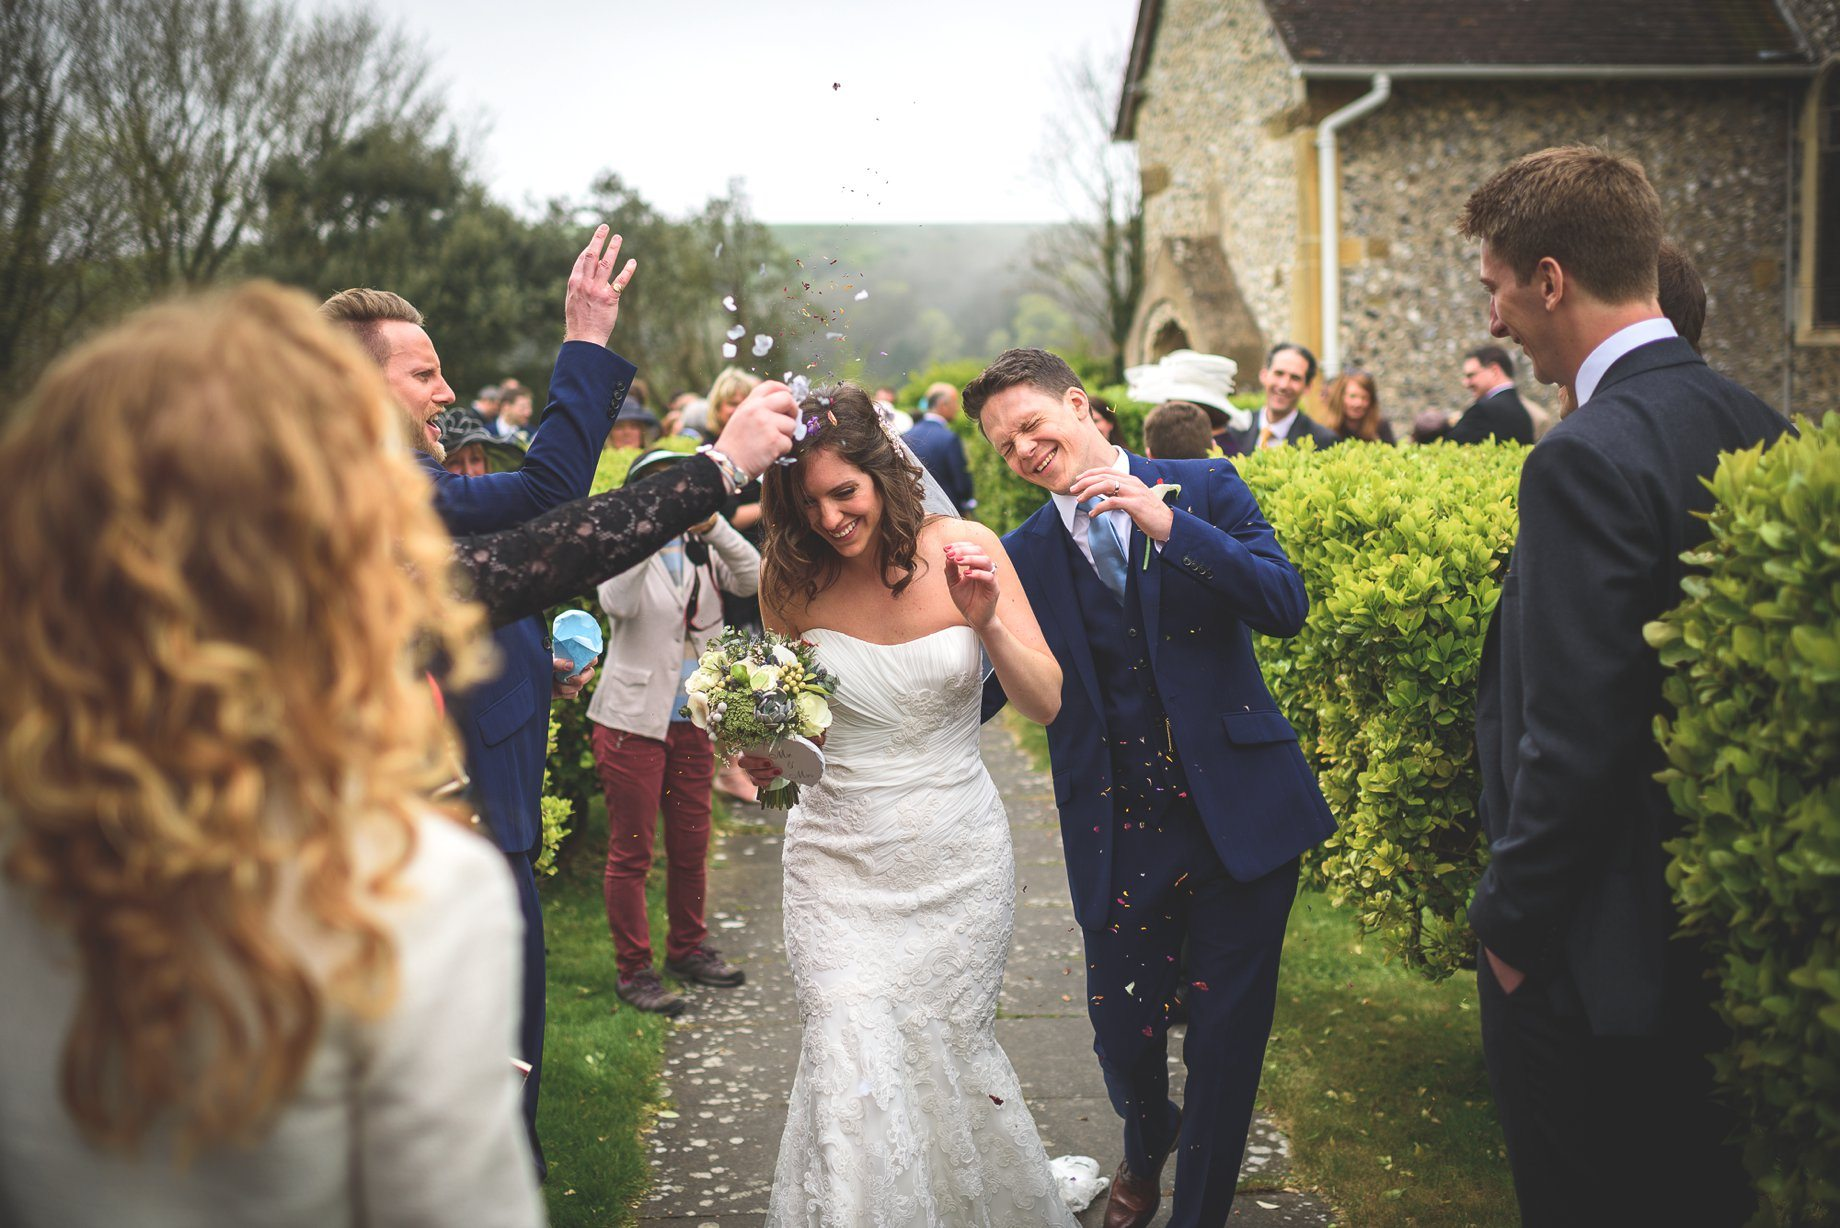 Louisa and Chris - West Sussex wedding photography (73 of 160)